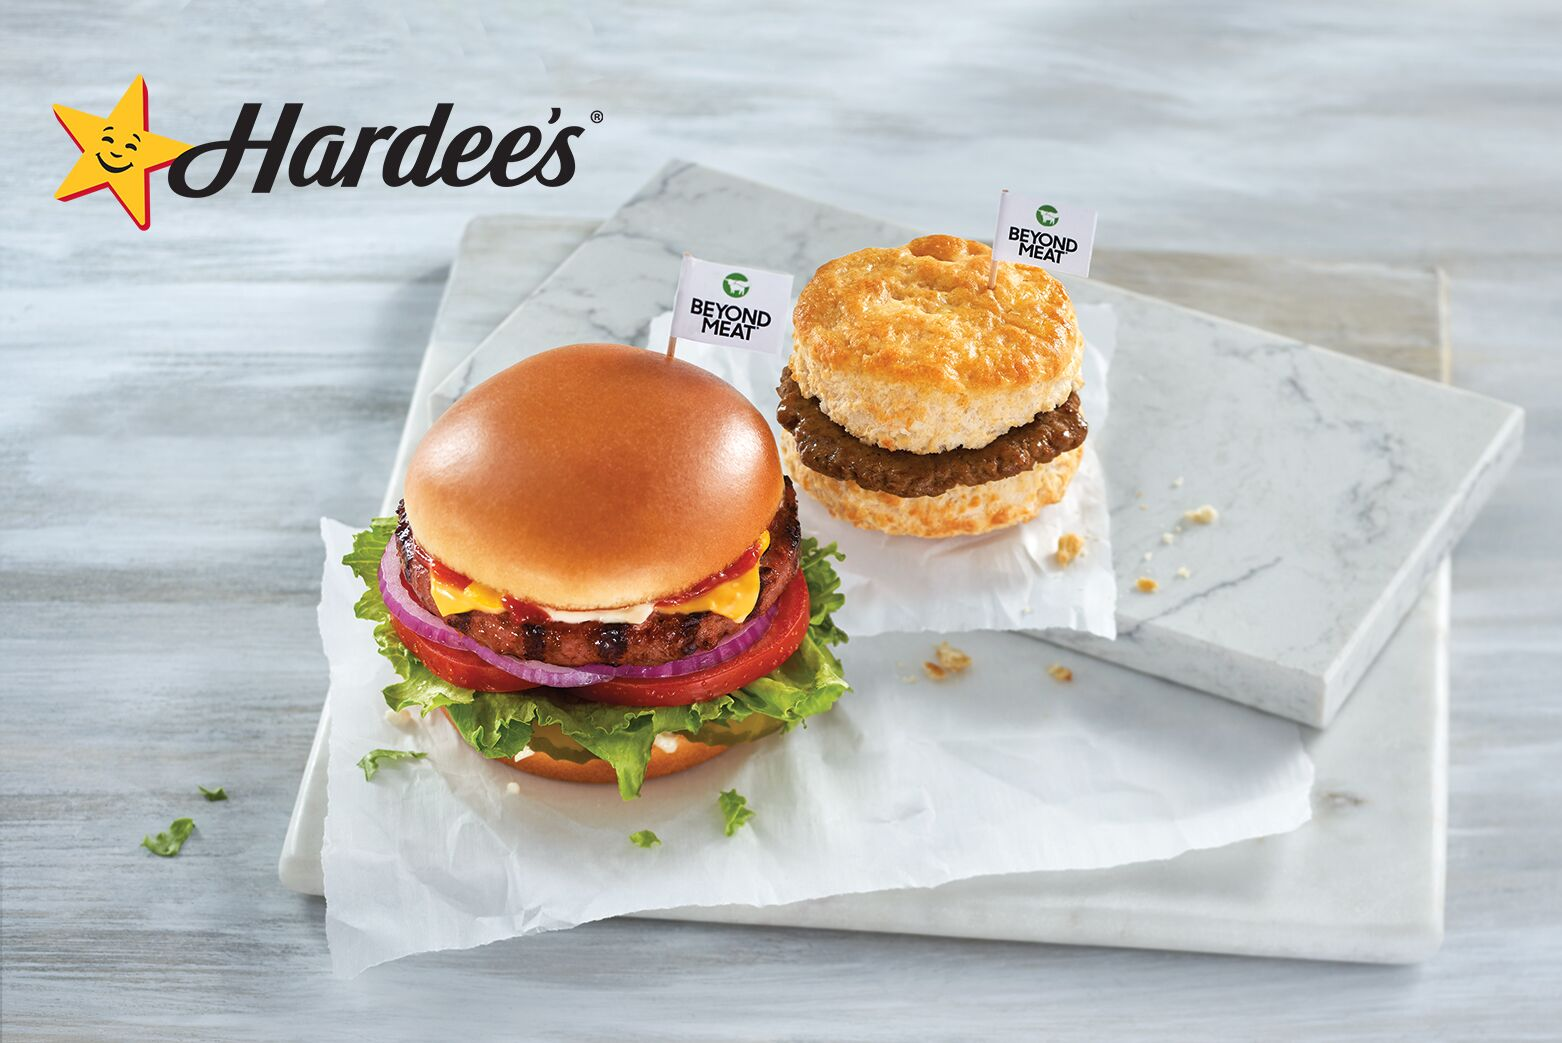 Beyond Meat and Hardee's are teaming up to make breakfast better